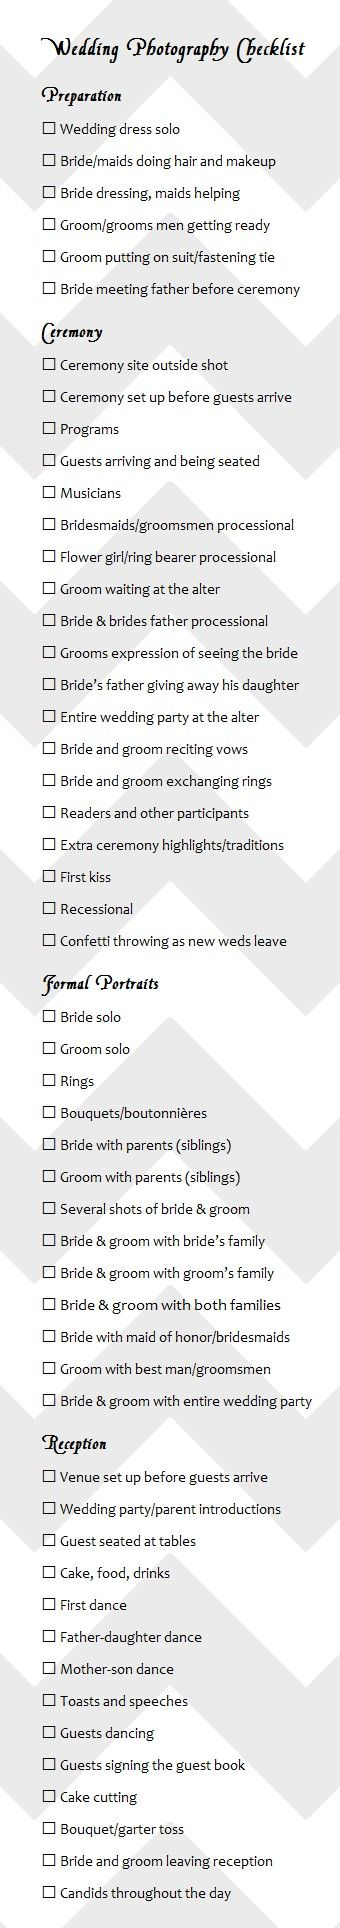 A great resource-wedding photography checklist